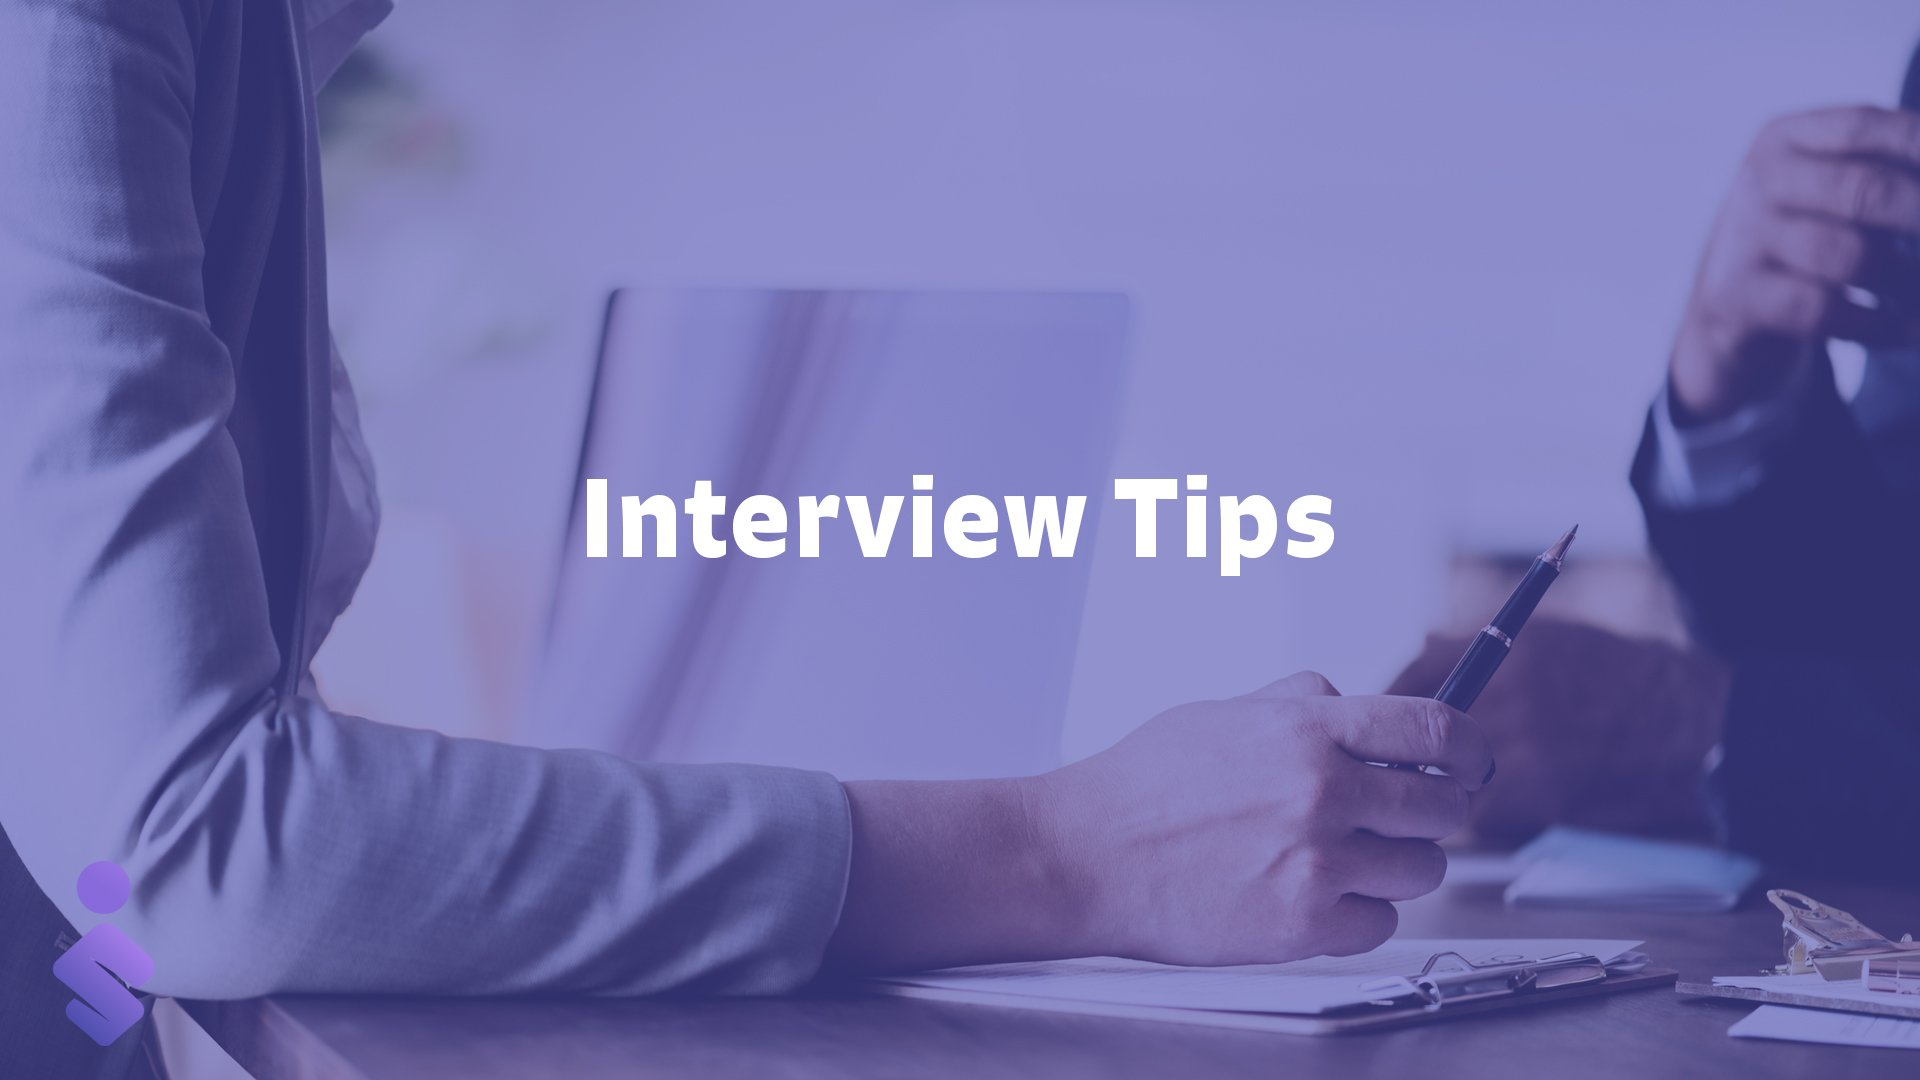 Interview Tips - Blogs & Articles